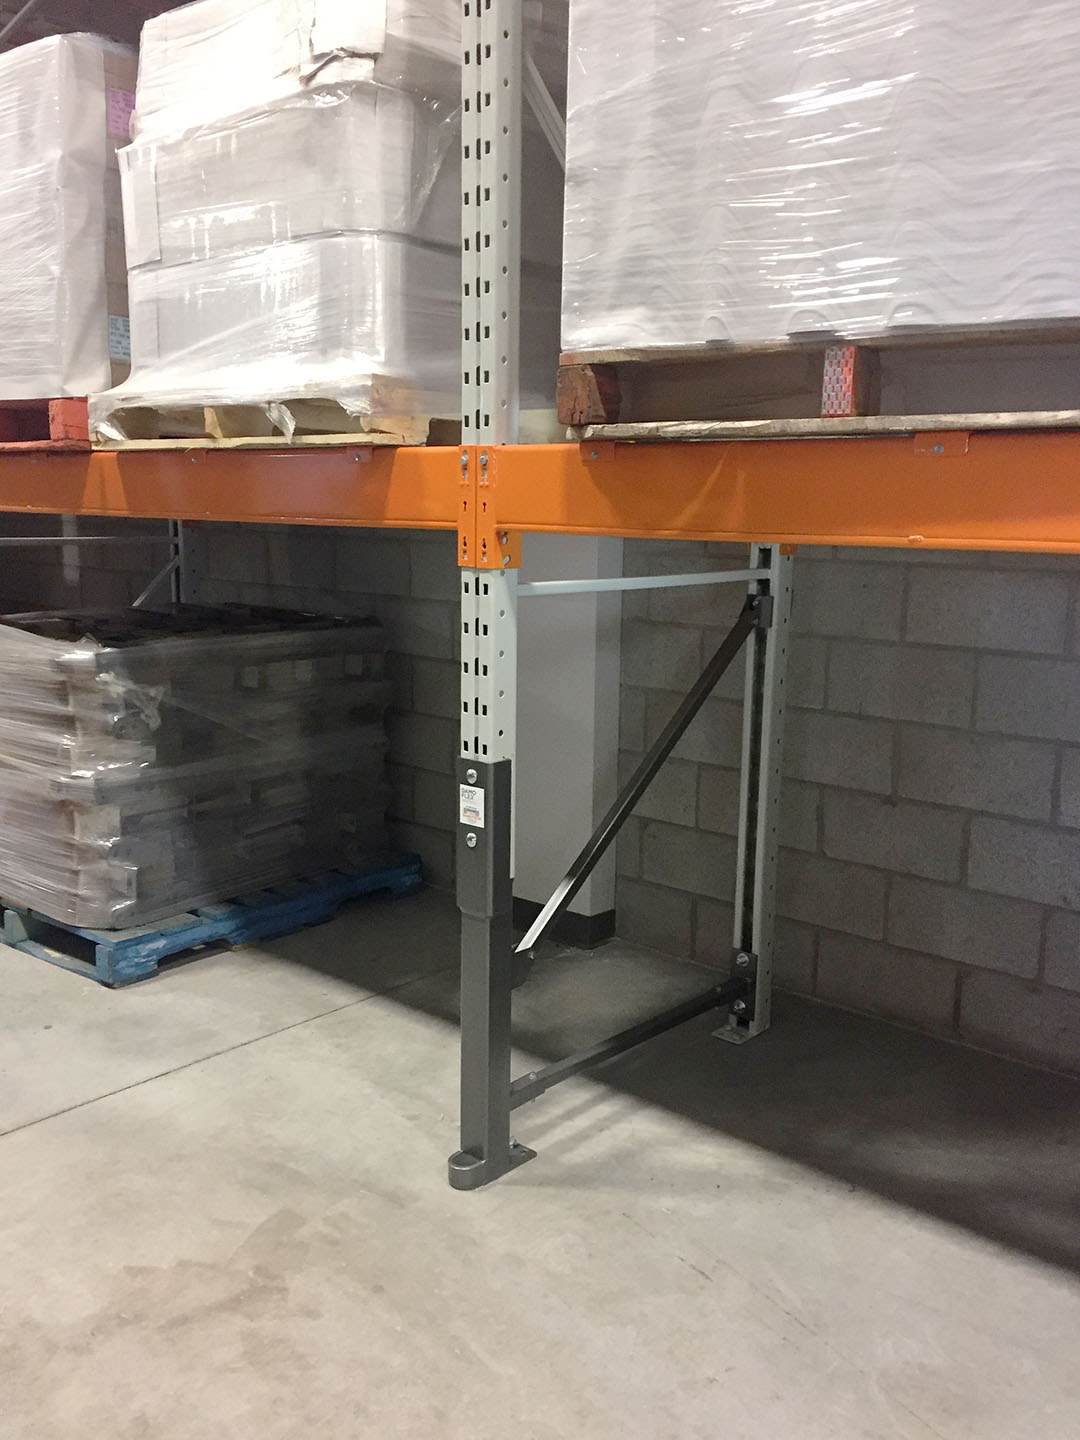 Pallet rack repaired with a Damo Flex - PSR Review